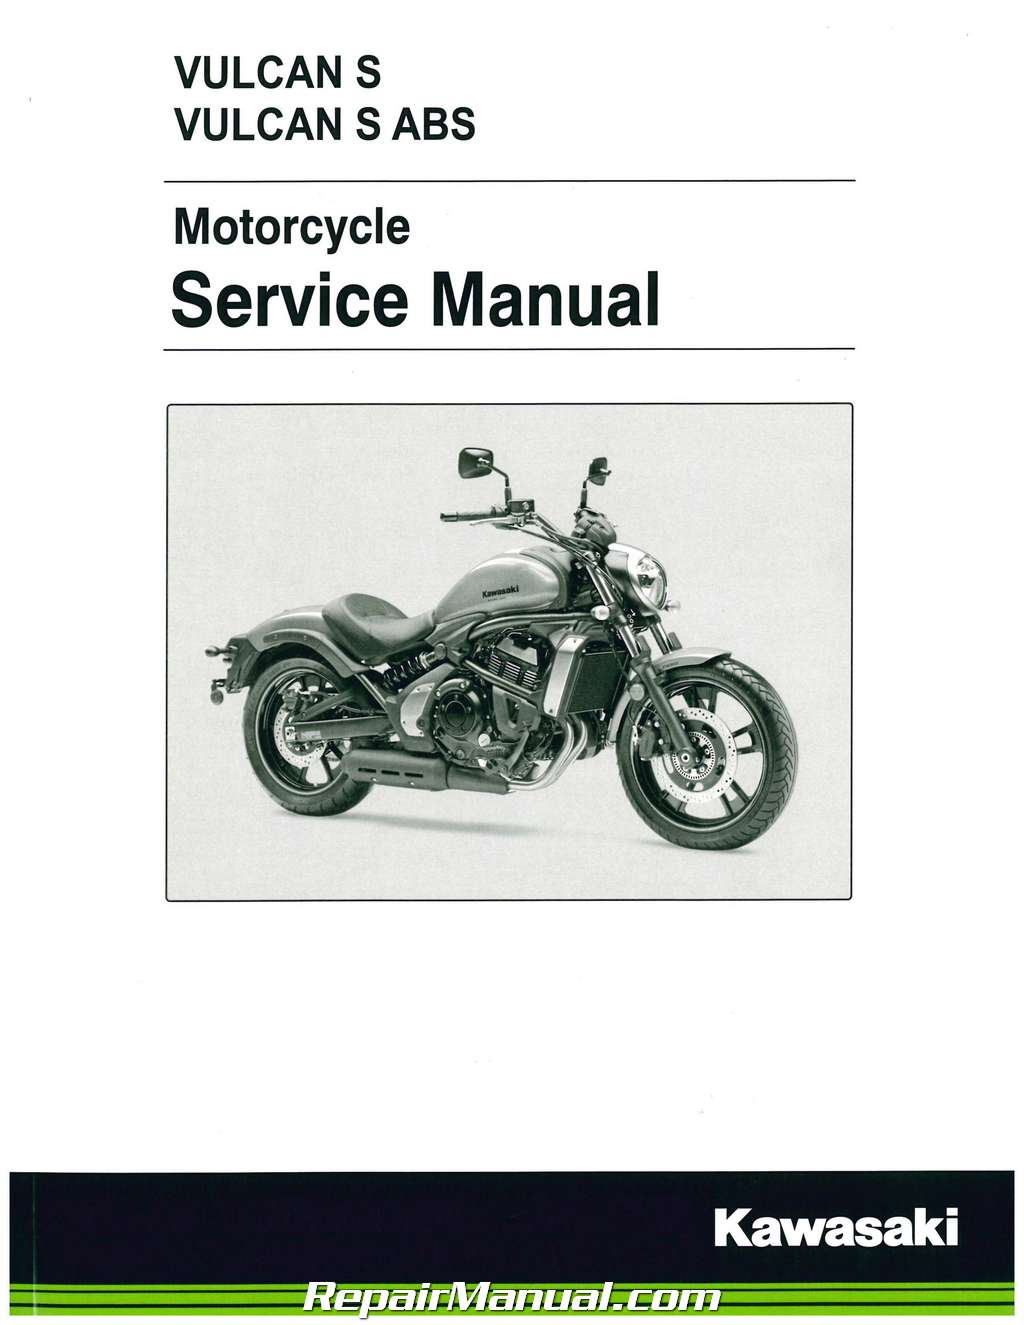 2015 2016 kawasaki en650 vulcan s abs motorcycle service manual rh repairmanual com kawasaki shop manual download kawasaki shop manual download